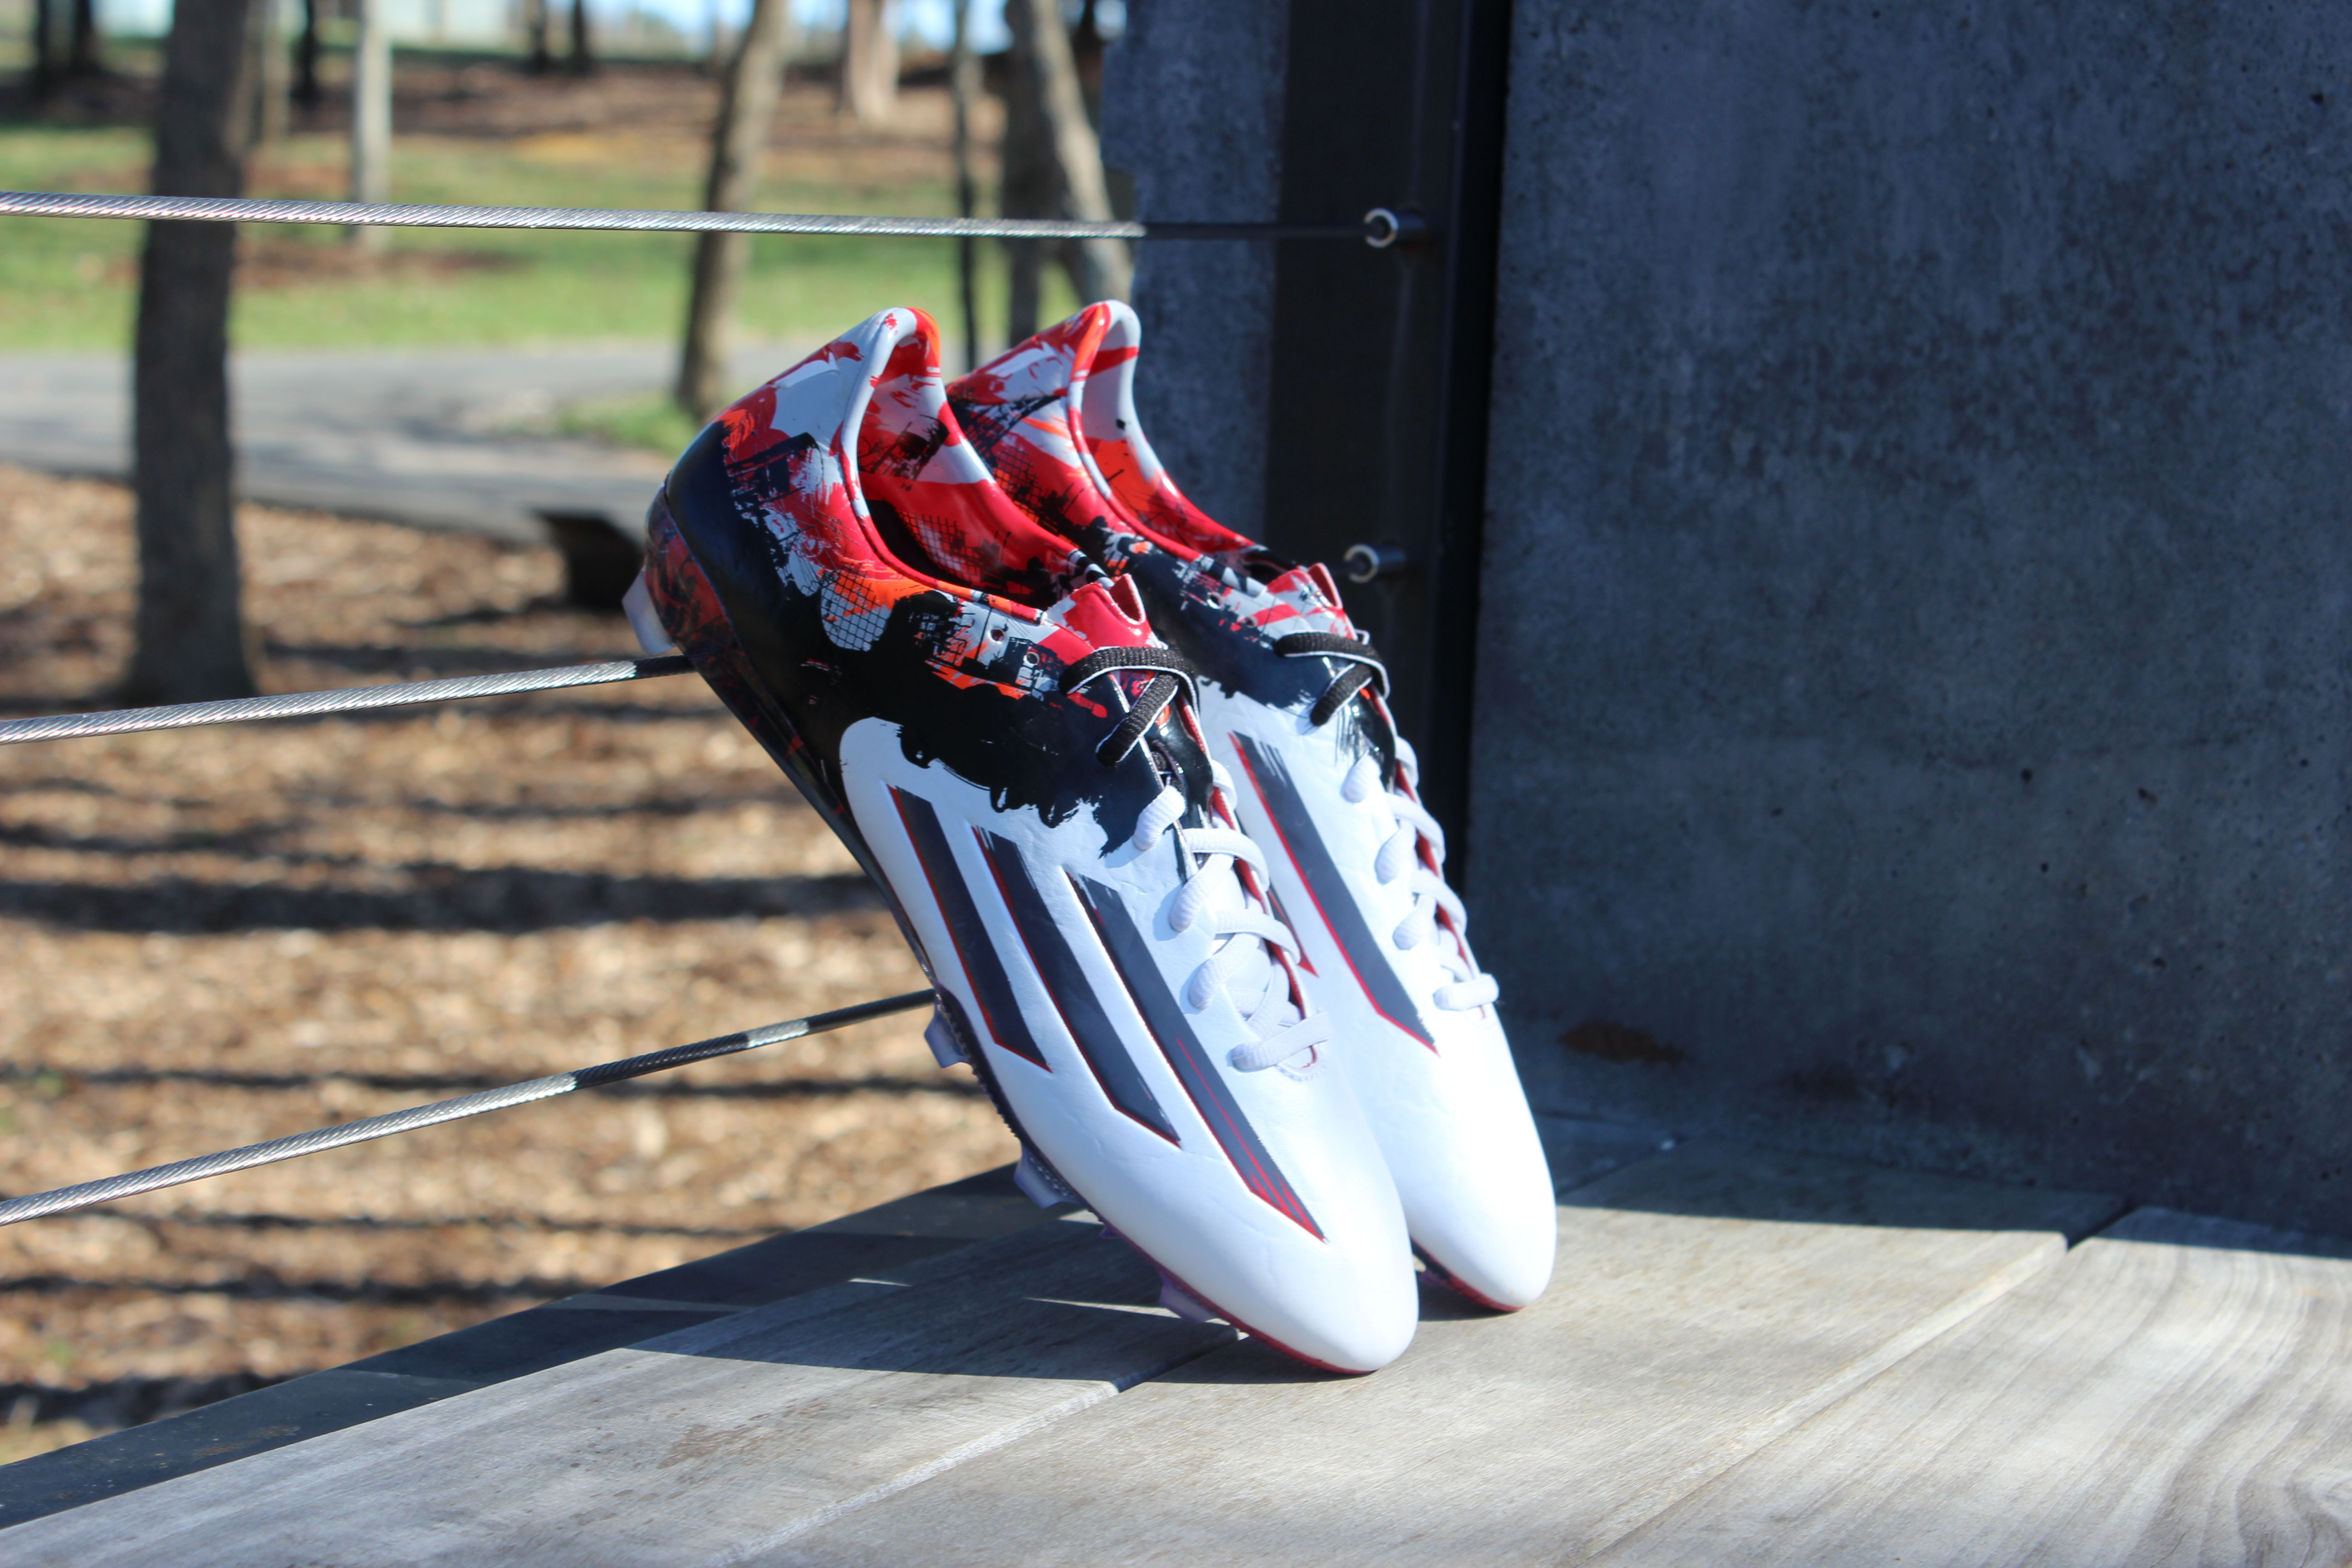 00638aa01 Go from the streets to the top. The newest Leo Messi signature cleat from  adidas.